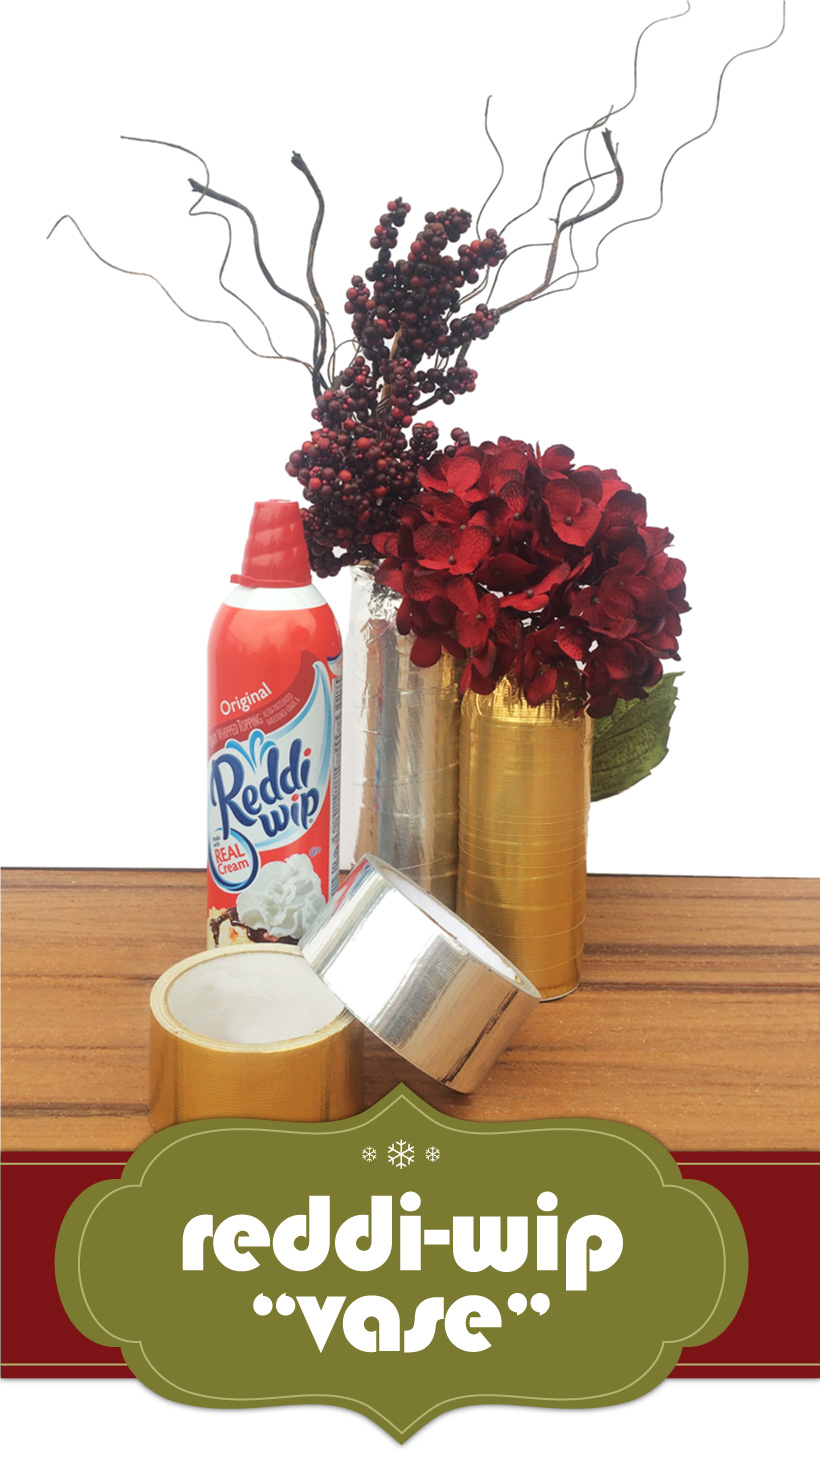 reddi-wip-vase_Forkful-article_Target-Black-Friday-Shopper-Program-2015.jpg